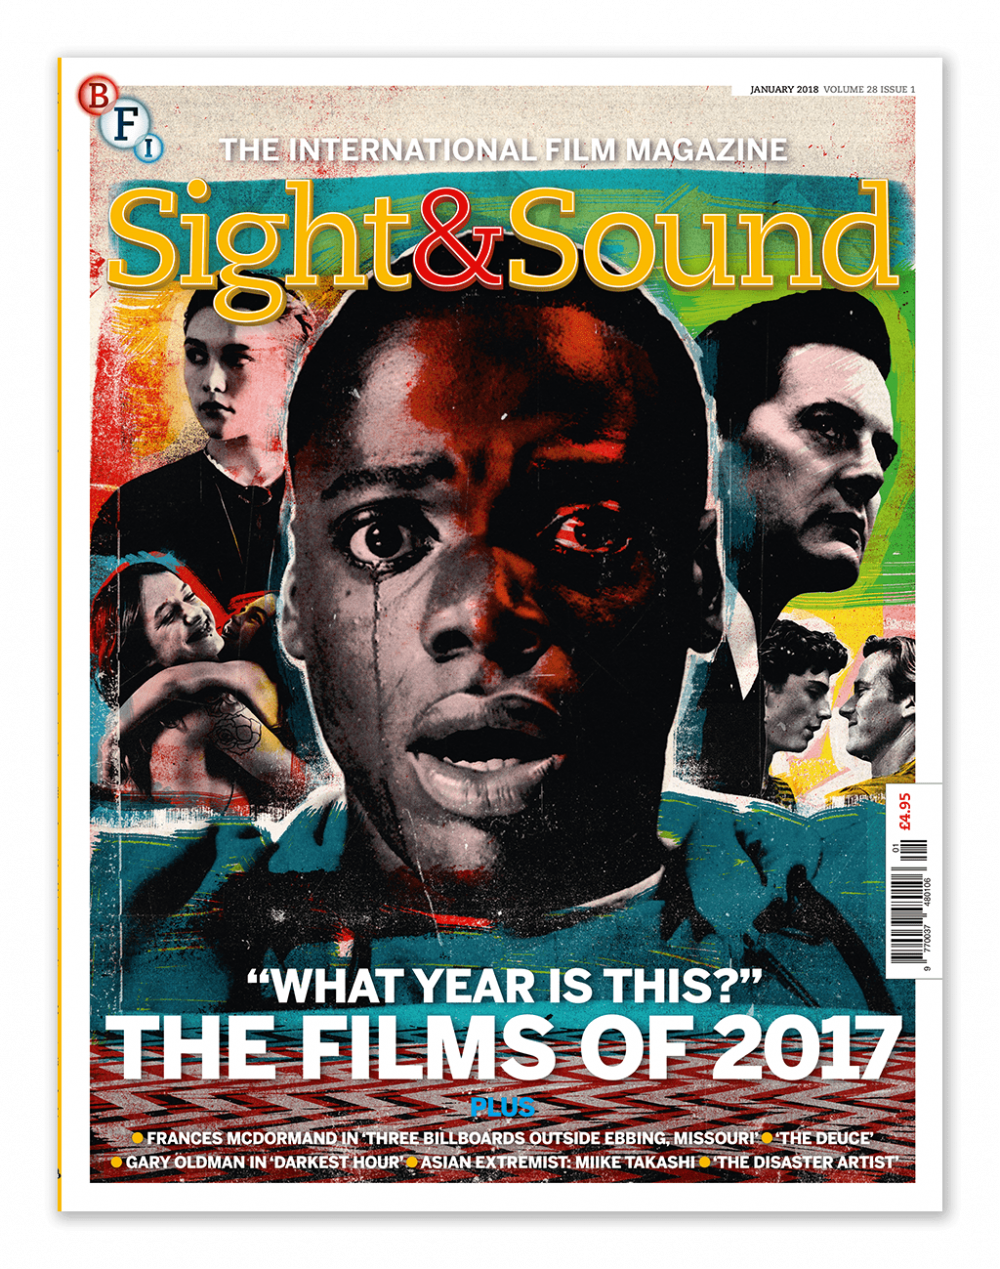 Sight & Sound: the January 2018 issue | BFI